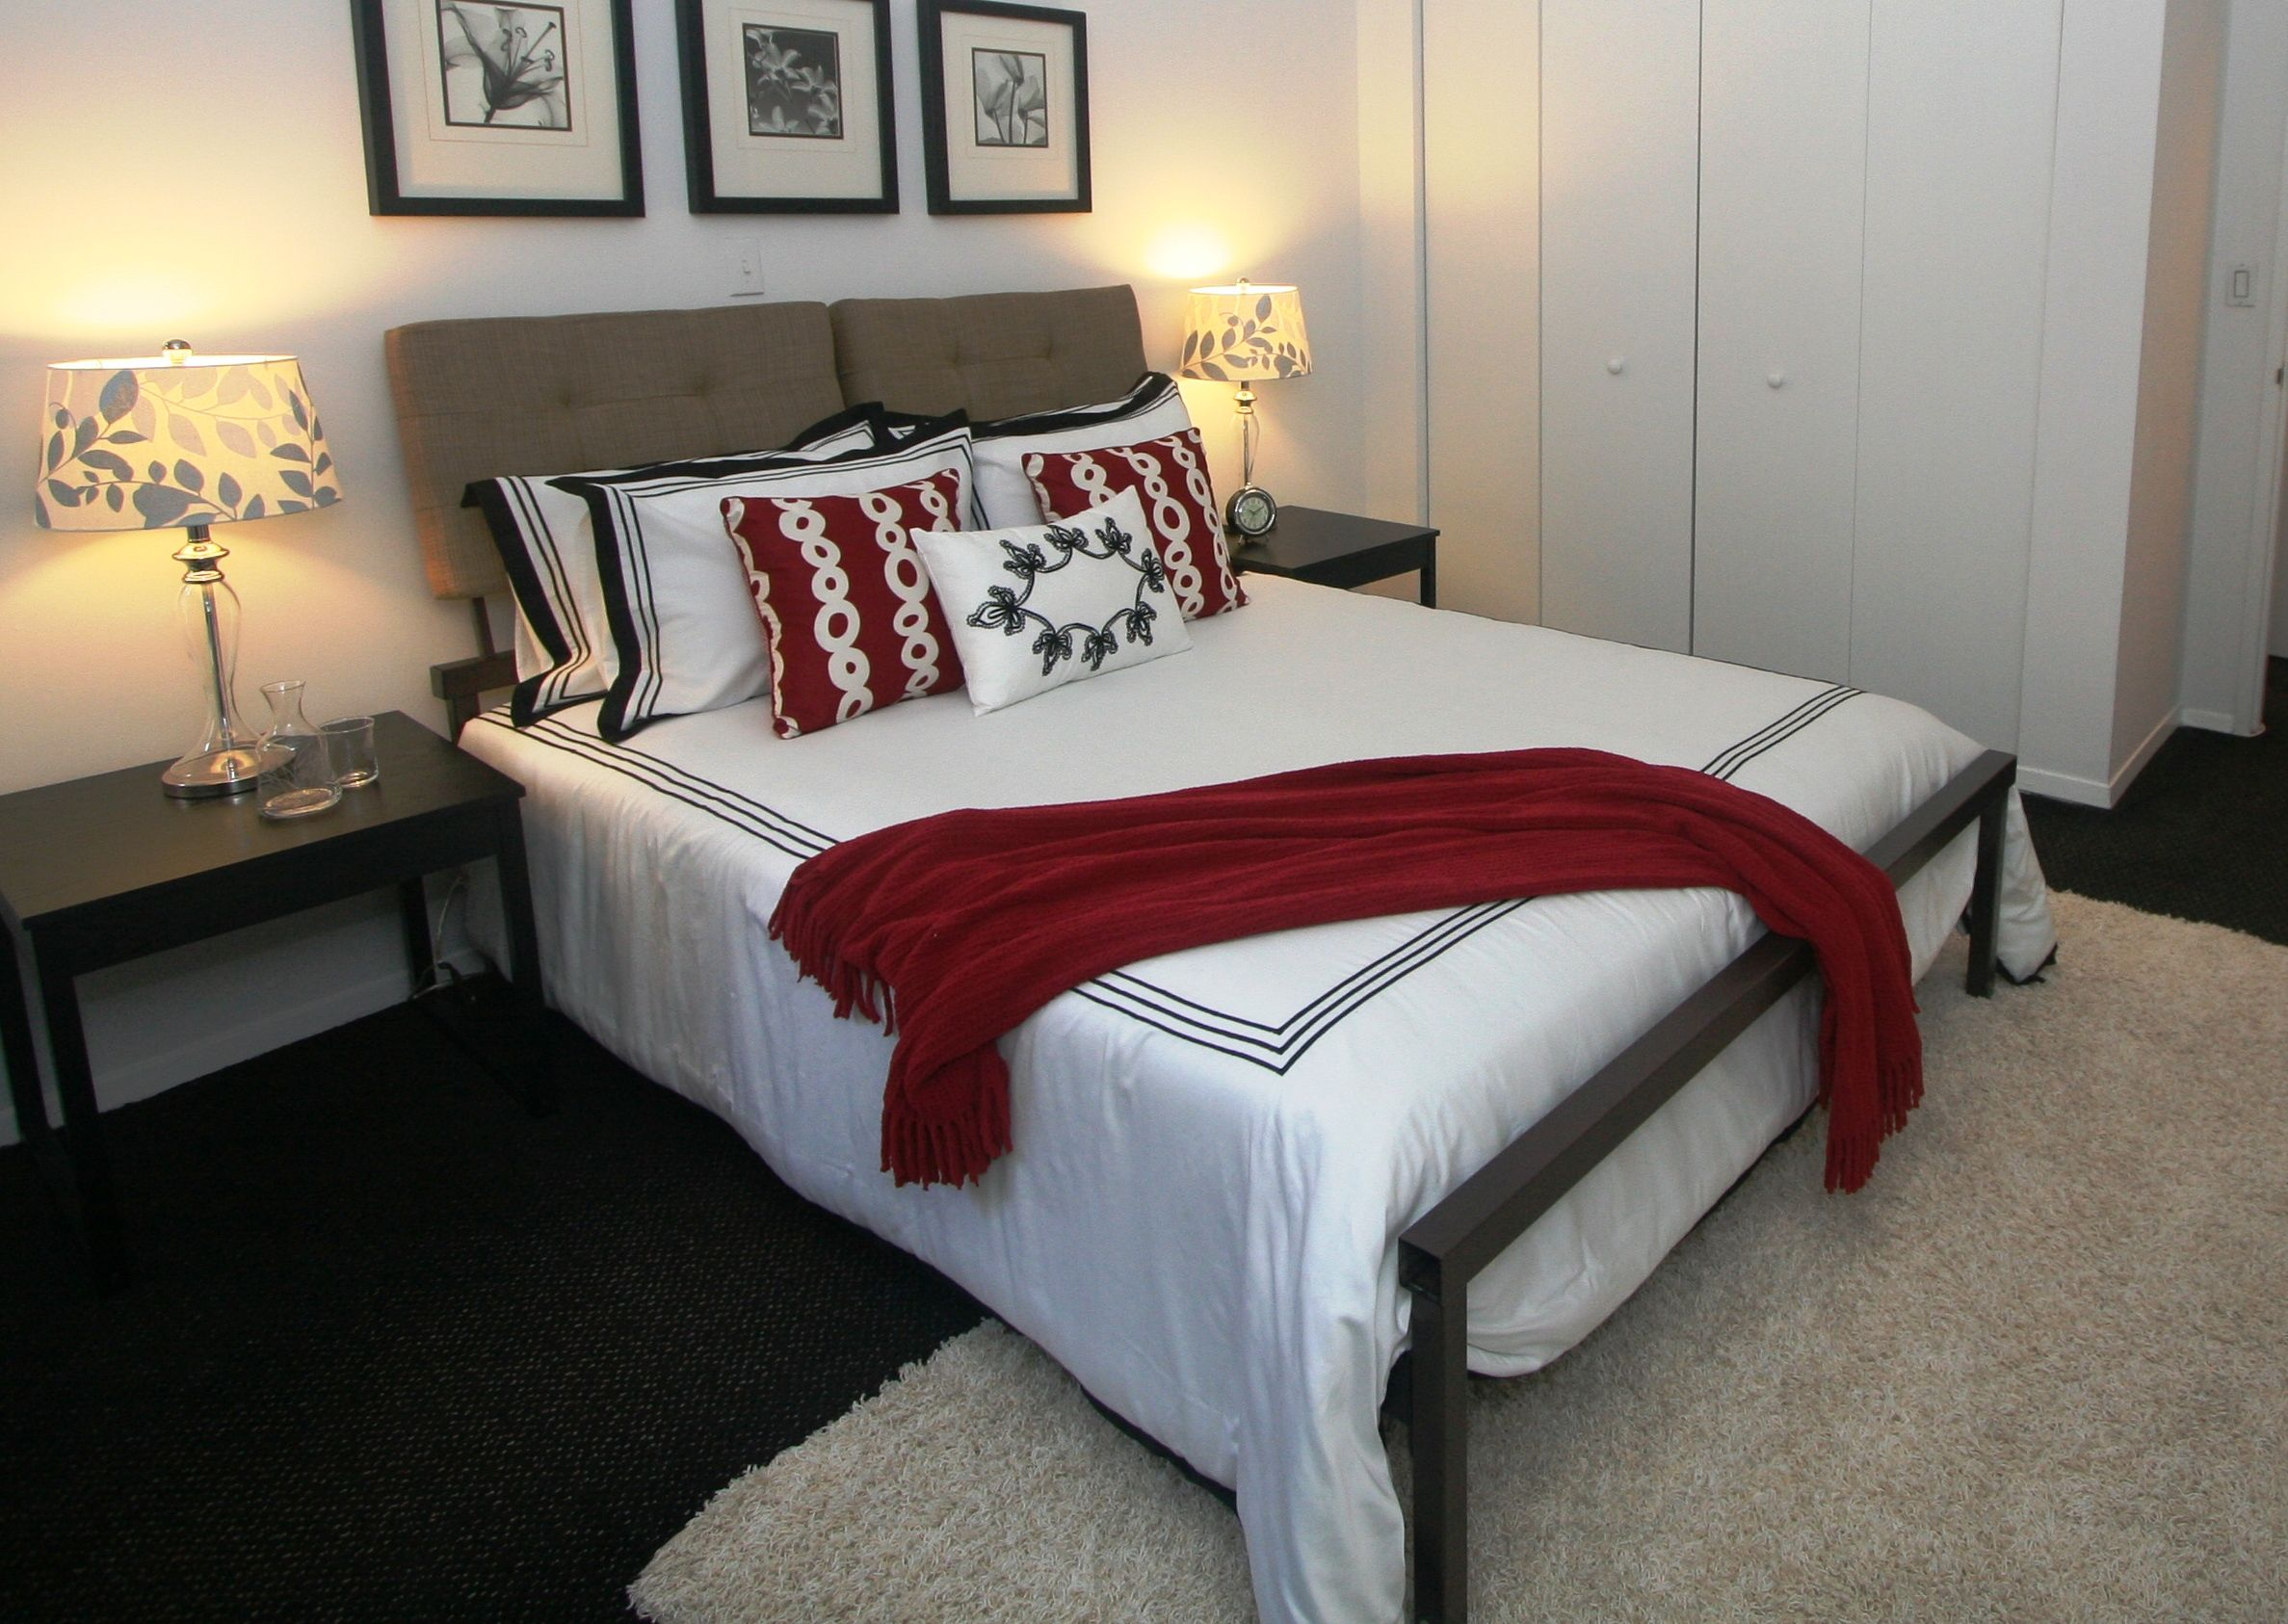 Black And White With Red Accents Bedroom Staged To Home Decor